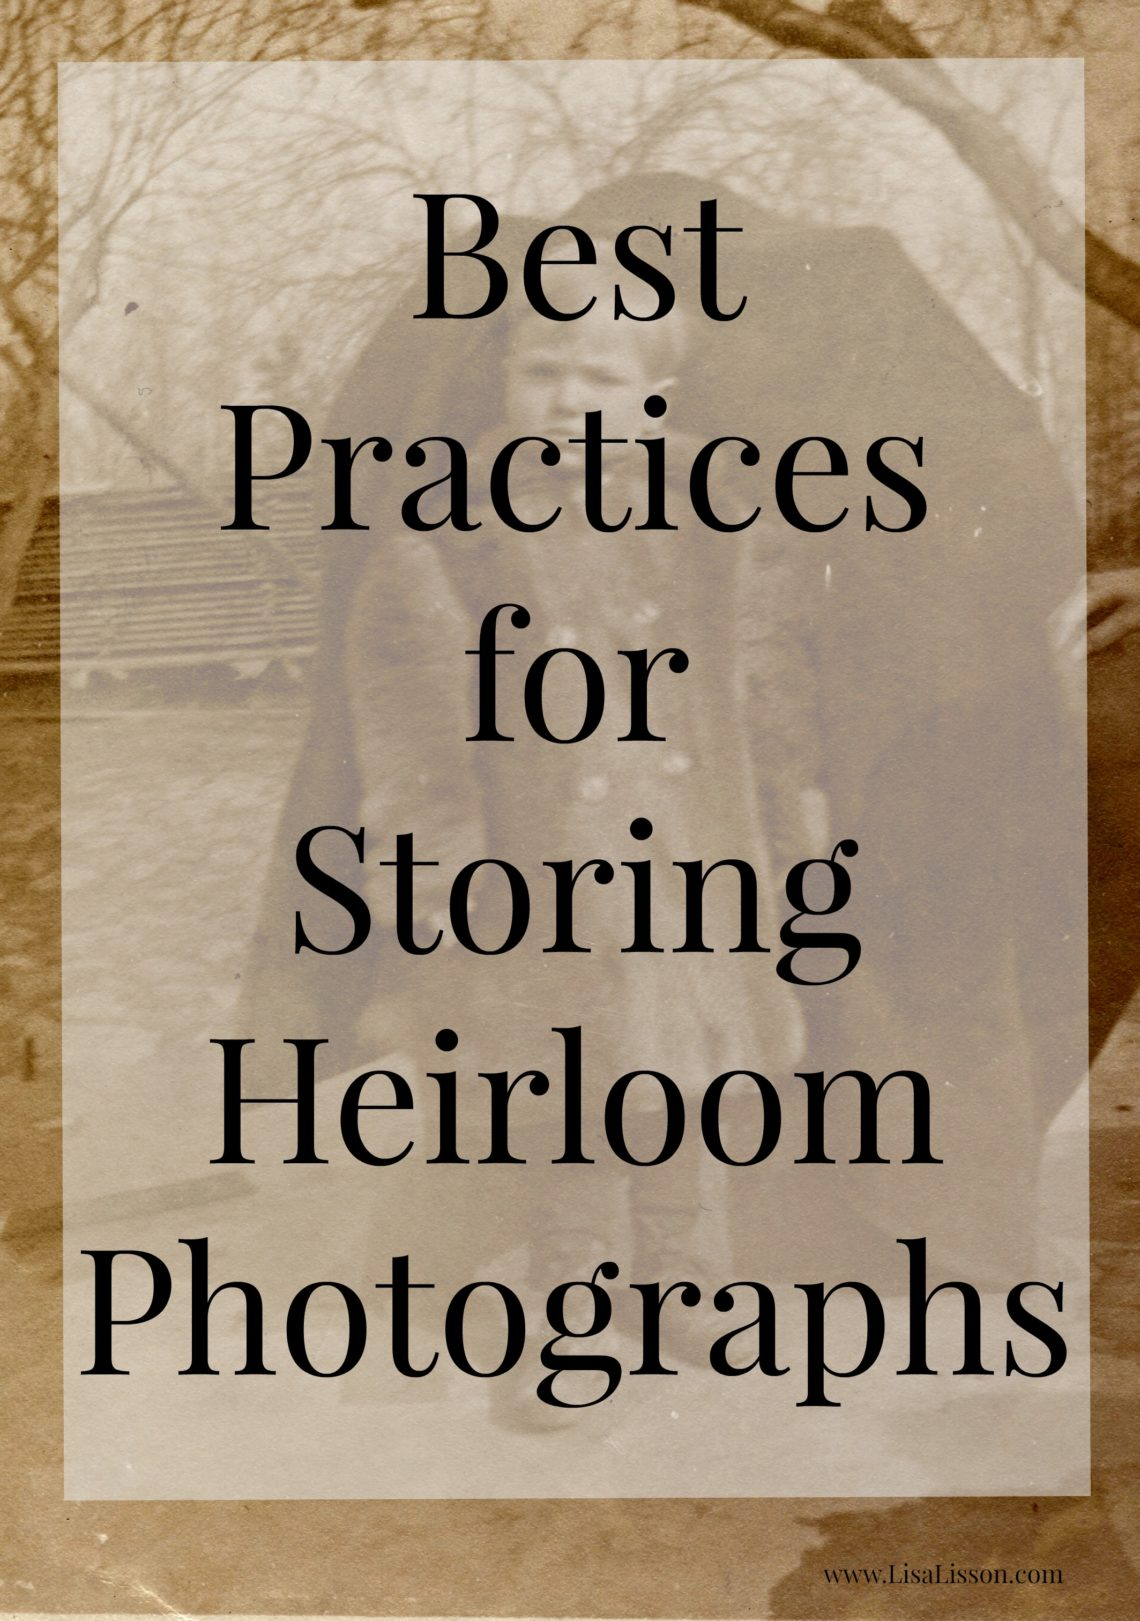 Best Practices for Storing Heirloom Photographs